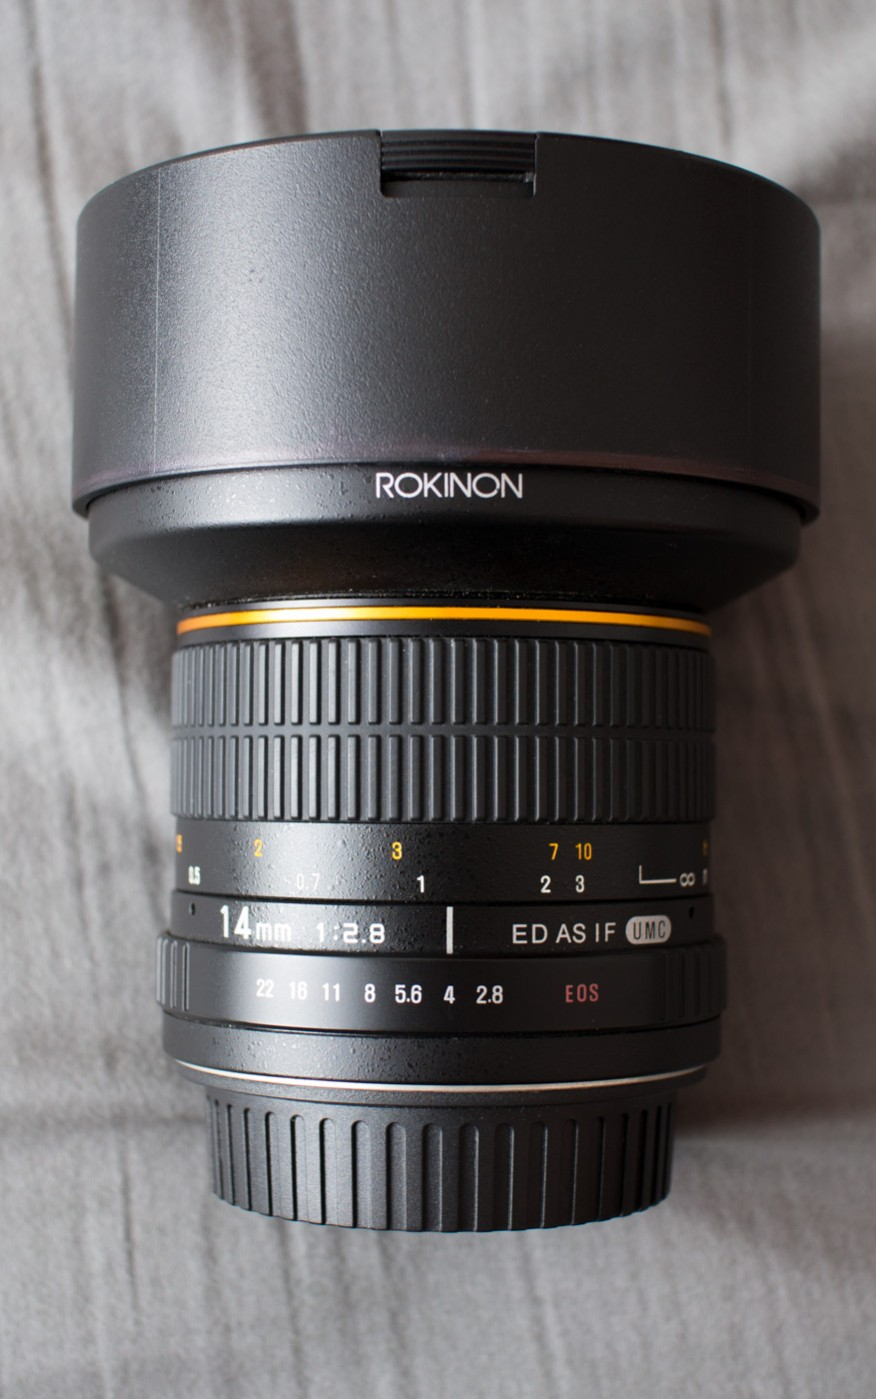 Rokinon Samyang 14mm f/2.8 IF ED UMC Lens Cap On